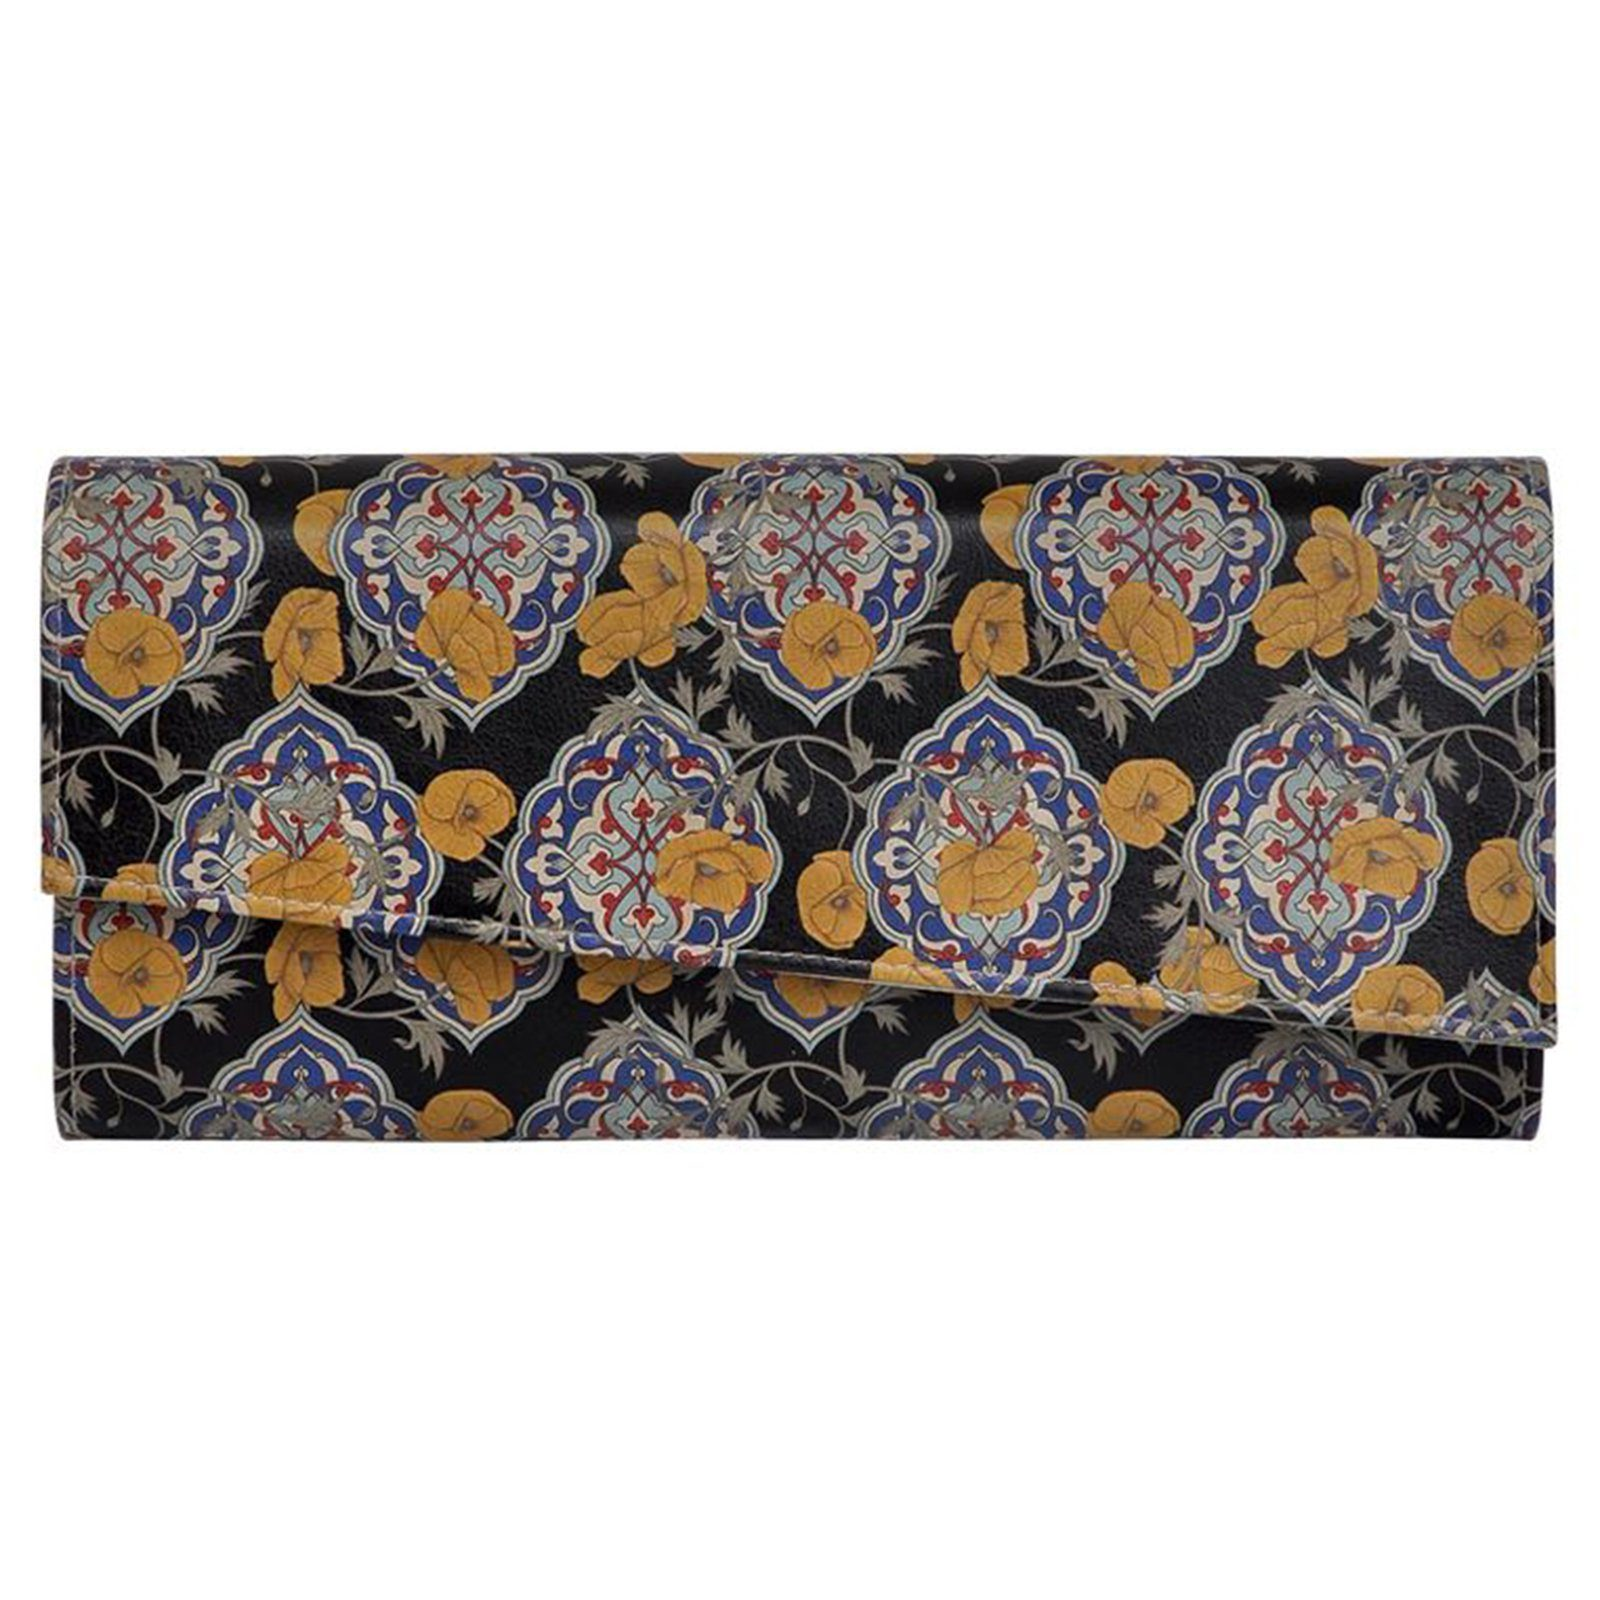 DOGO Clutch »Tiles and Flowers«, Vegan